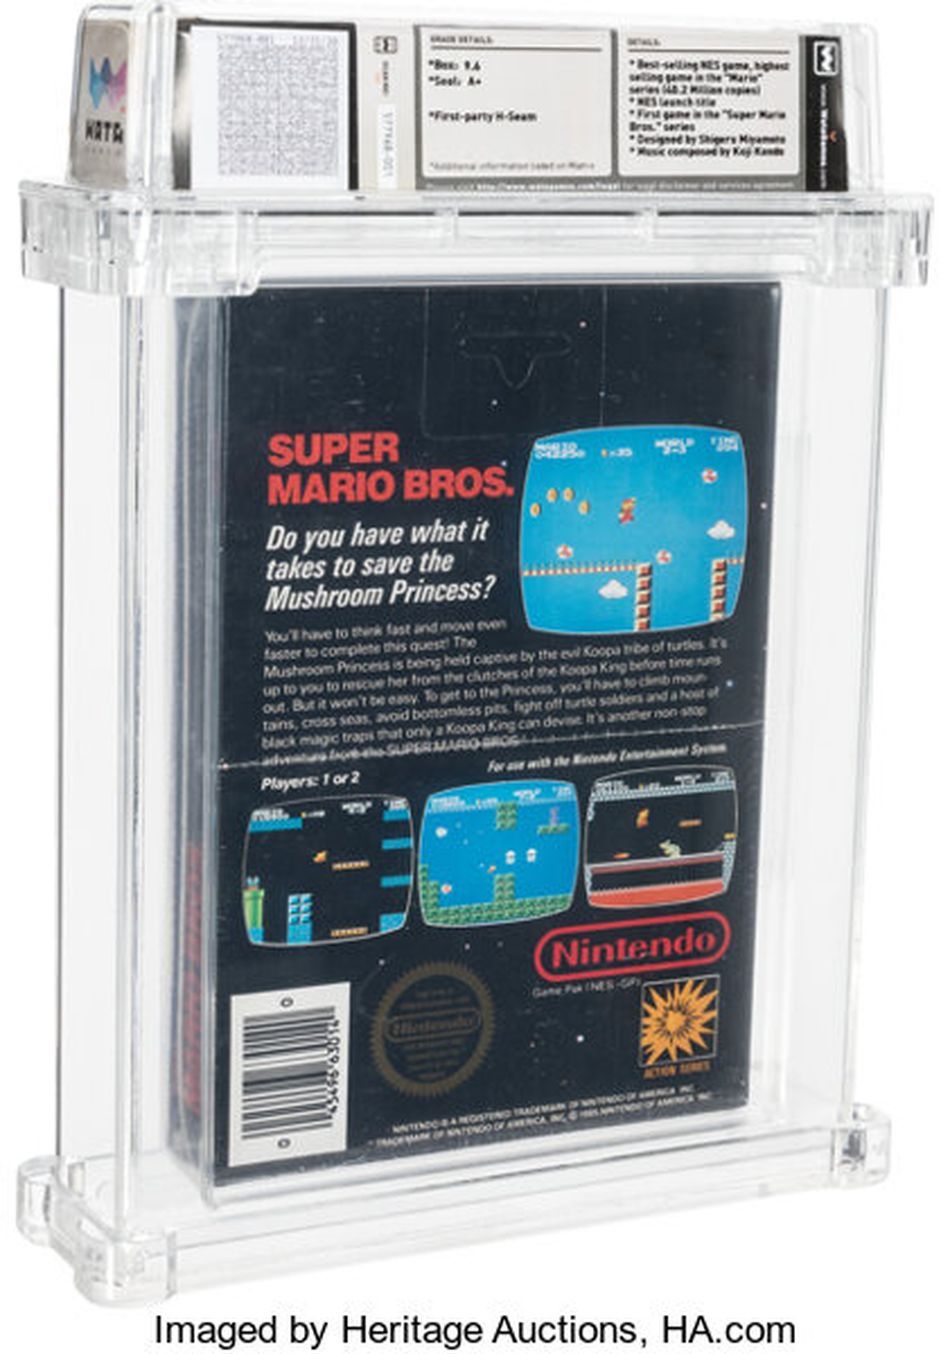 The back of the most expensive Super Mario Bros. game ever.